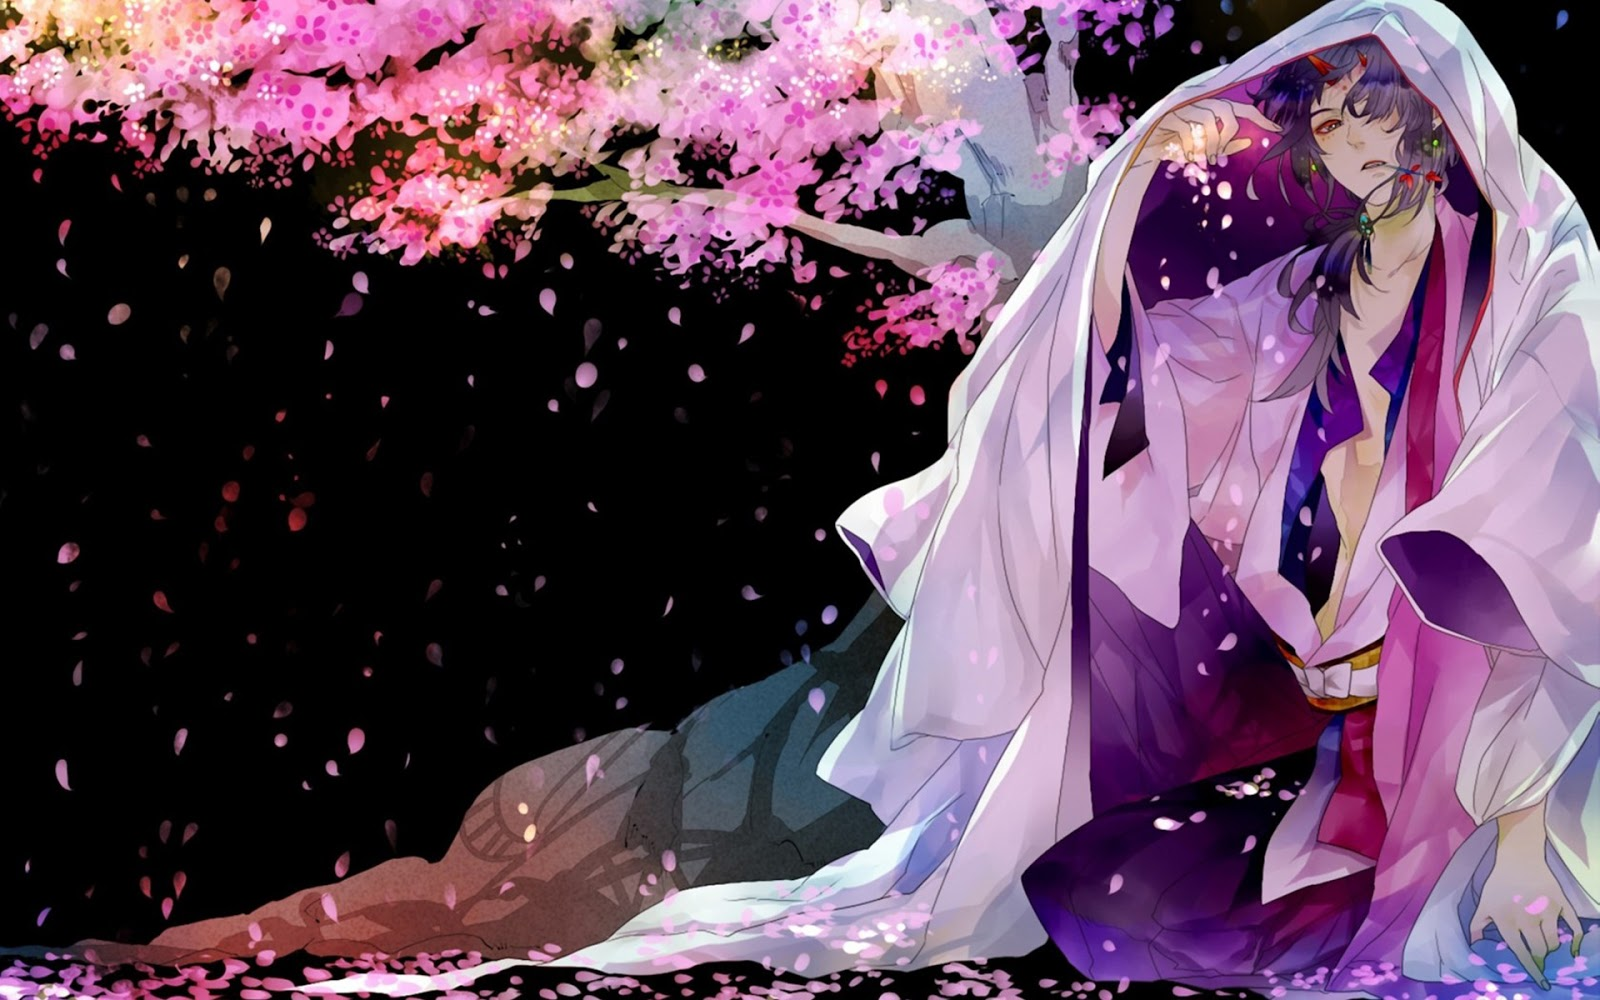 Anime Guy Kimono Cherry Blossom HD Wallpaper Desktop PC Background 1600x1000